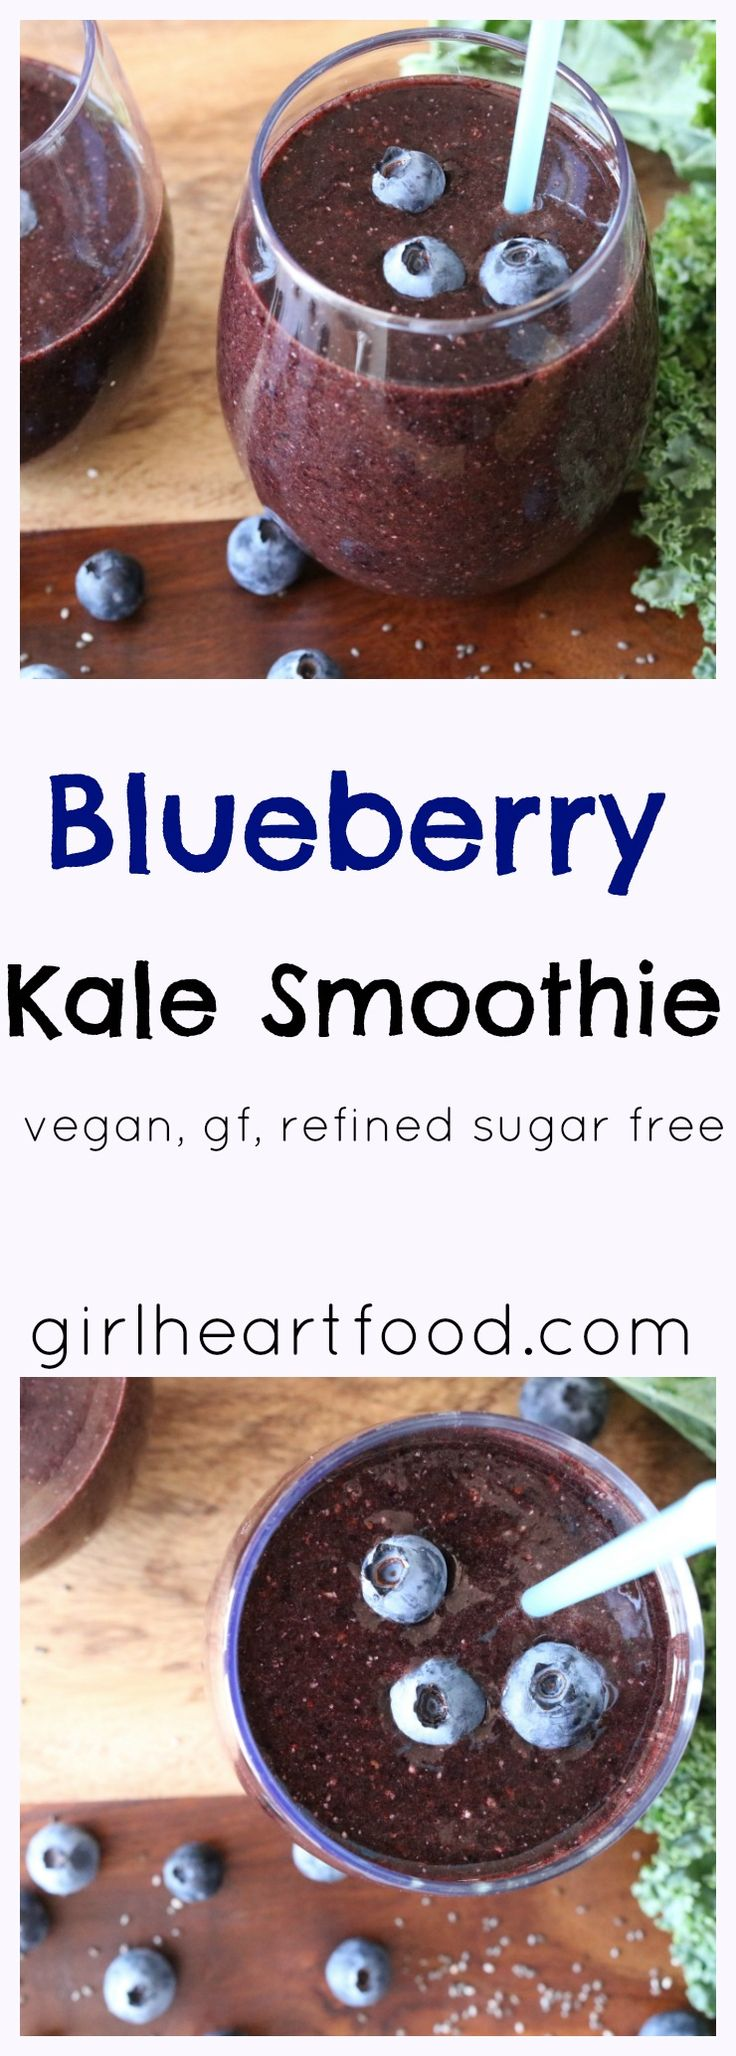 This Blueberry Kale Smoothie tastes delicious and is packed with goodness {vegan, gluten free, dairy free, refined sugar free} - girlheartfood.com